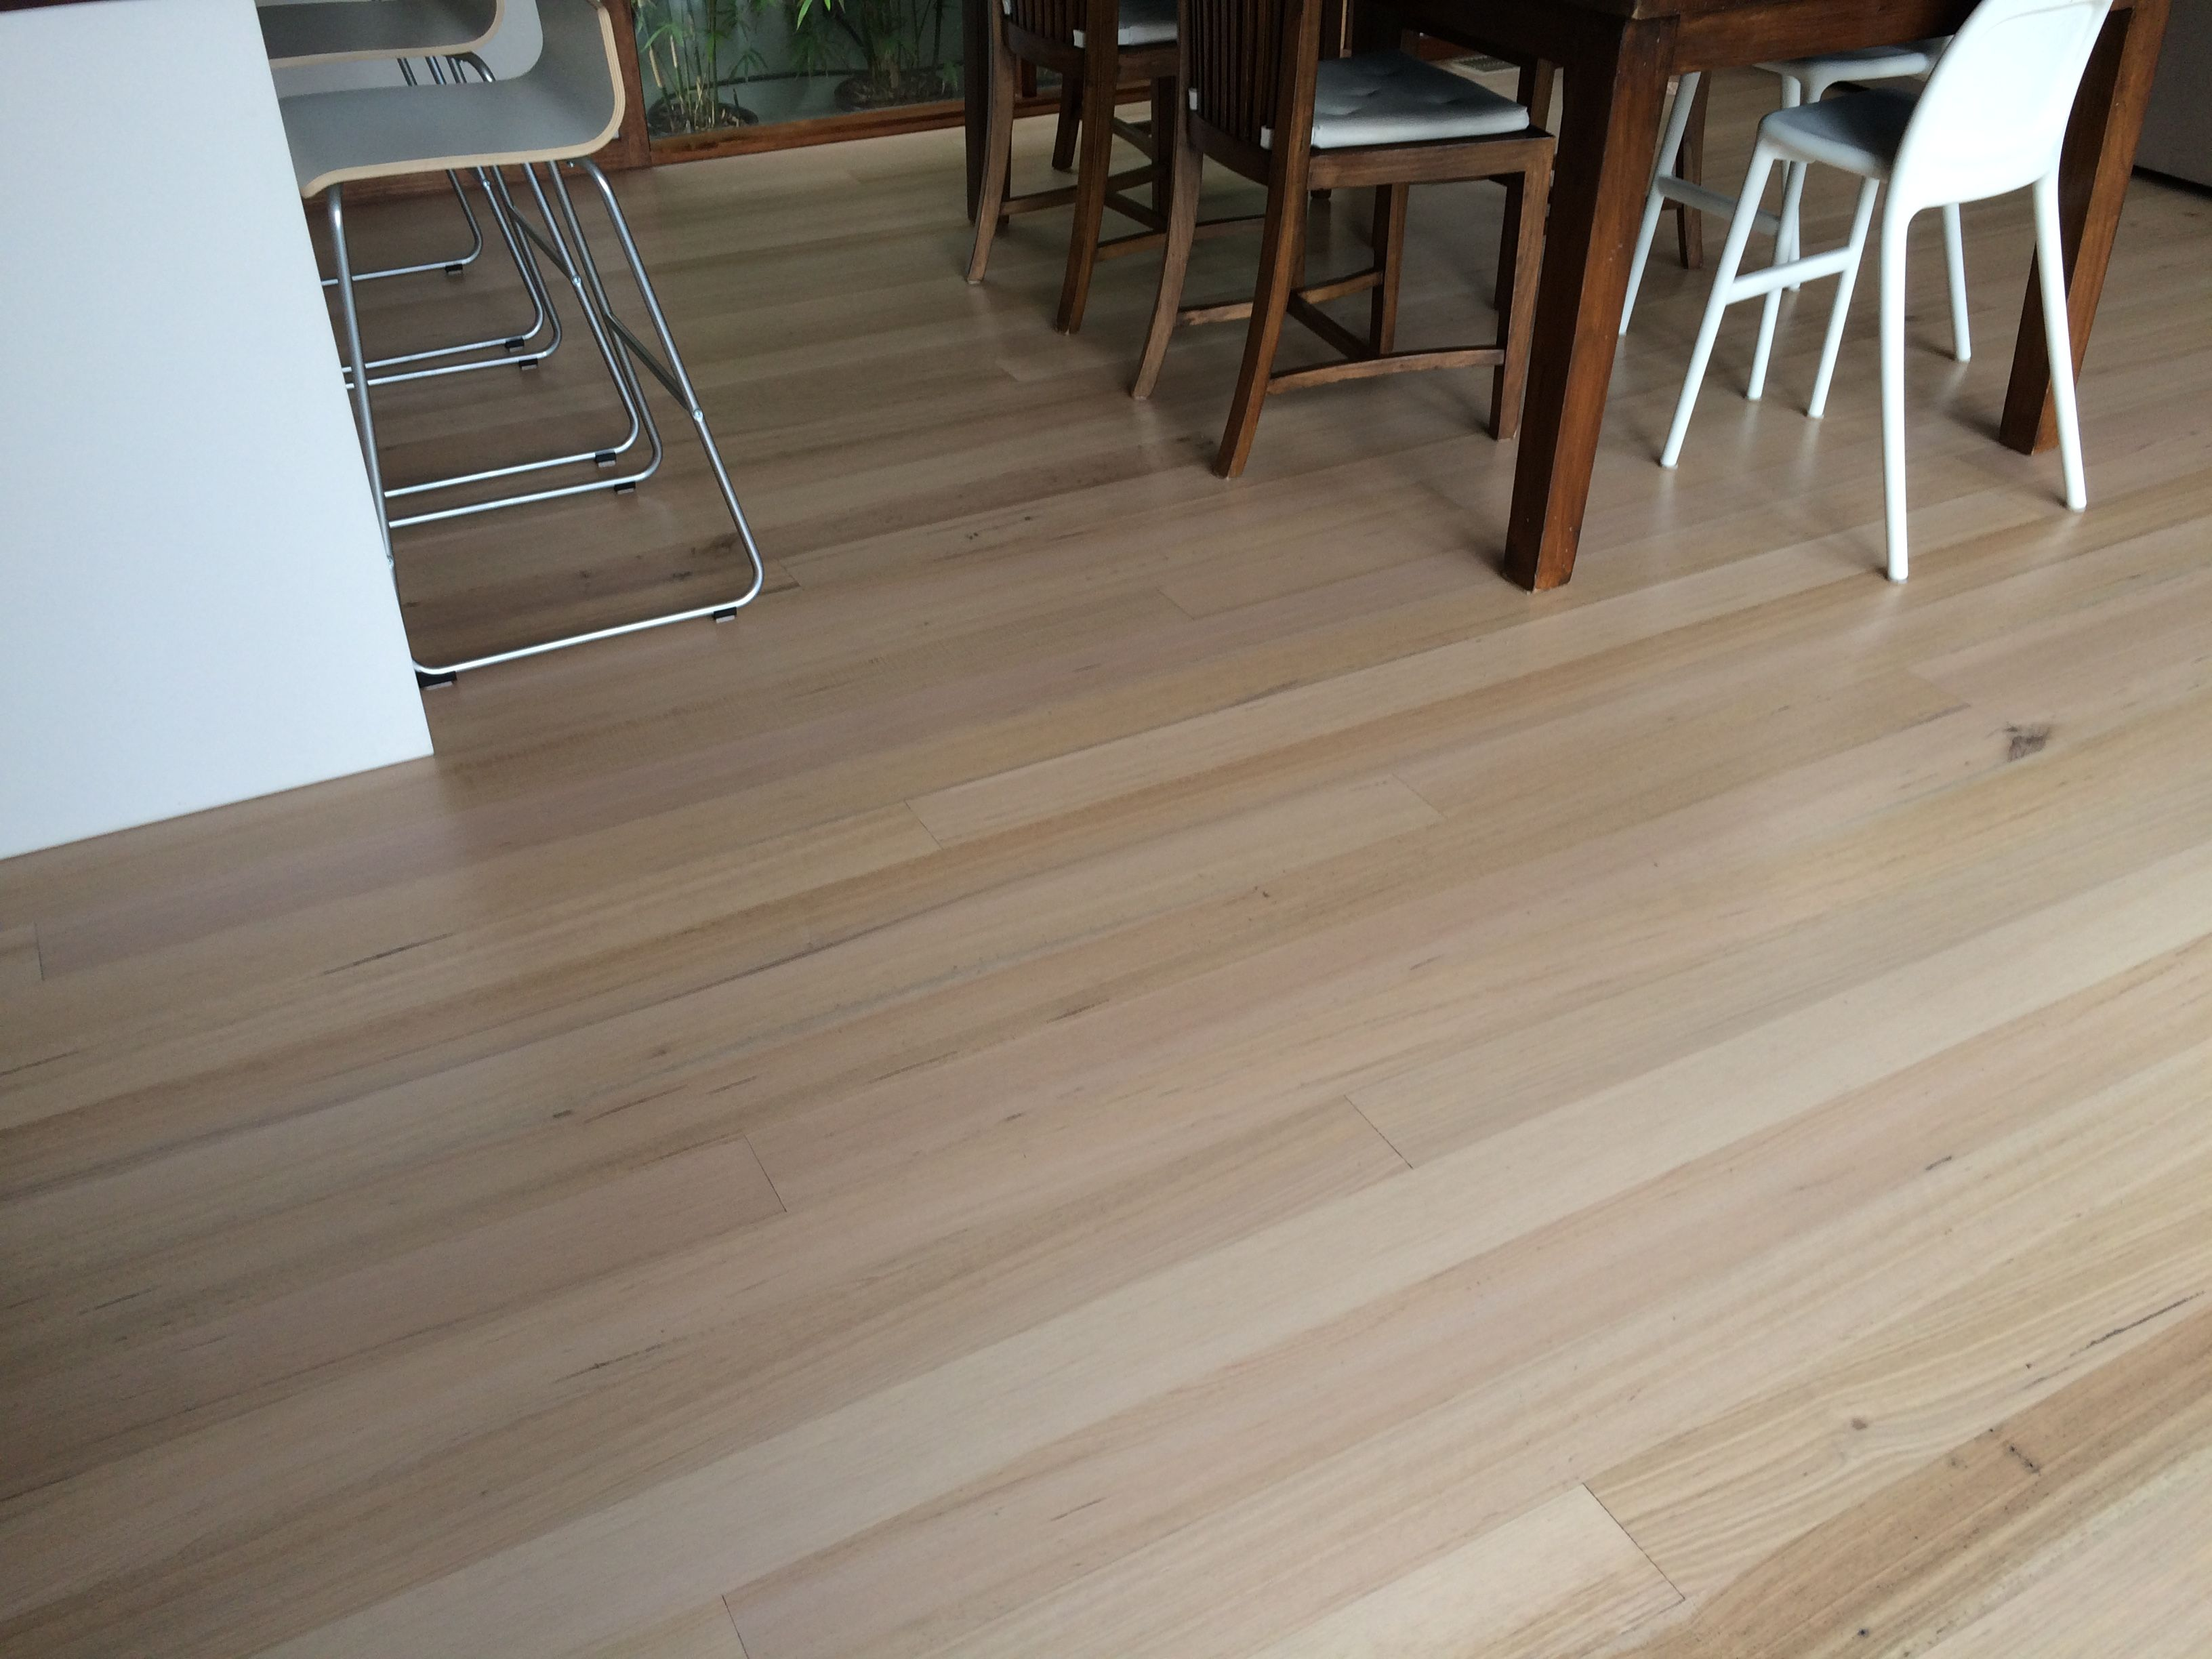 Lime White 1 2c Mixed With Tiny Bit Of Grey On Tas Oak And